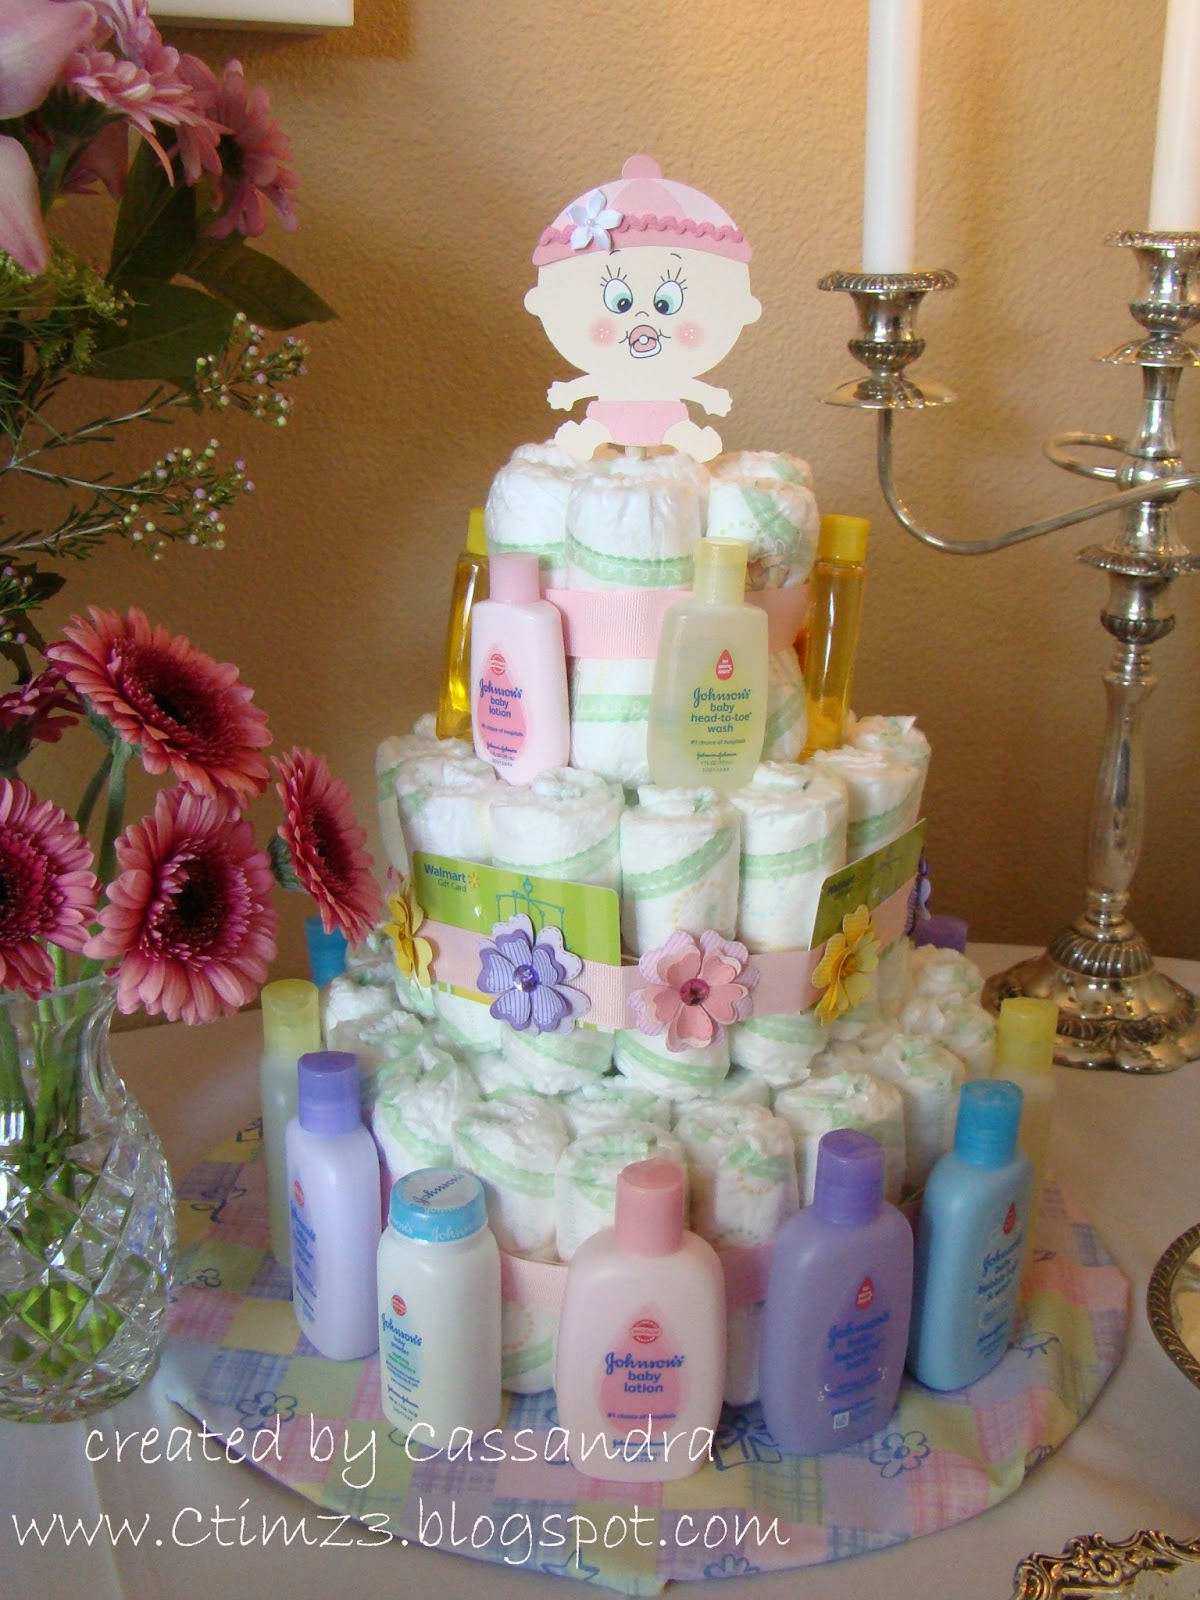 Creating with color by cassandra welcome sweet baby diaper cake publicscrutiny Image collections